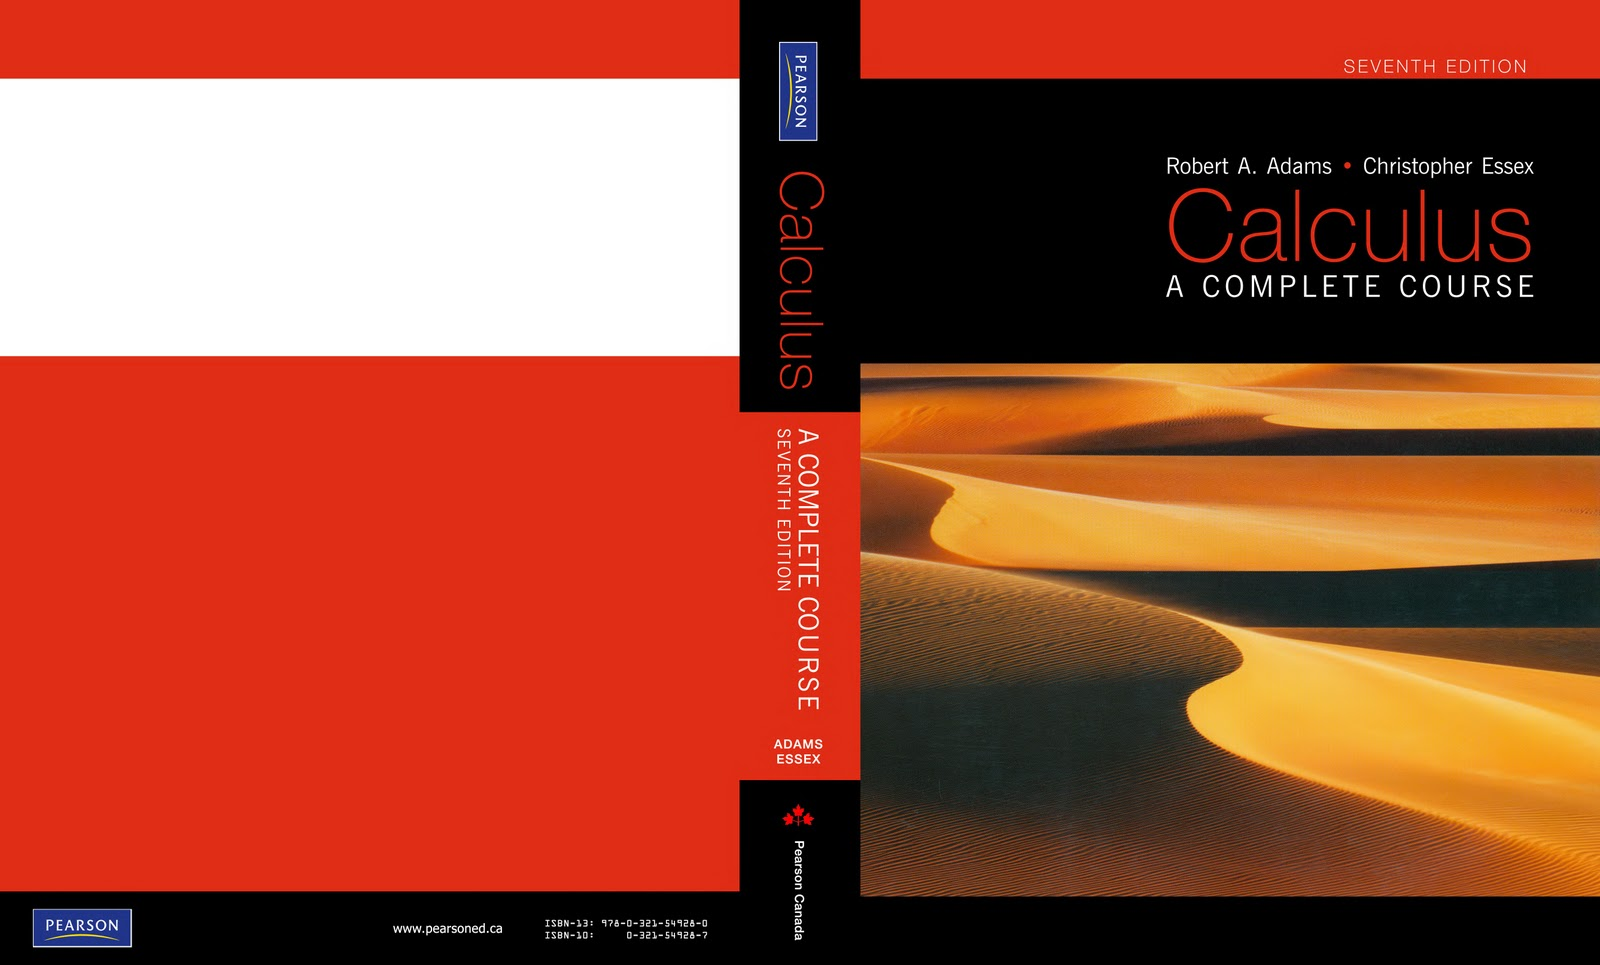 mymindrebels calculus a complete course 7th edition with solutions rh  mymindrebelsat blogspot com calculus a complete course 7th edition  solutions manual ...